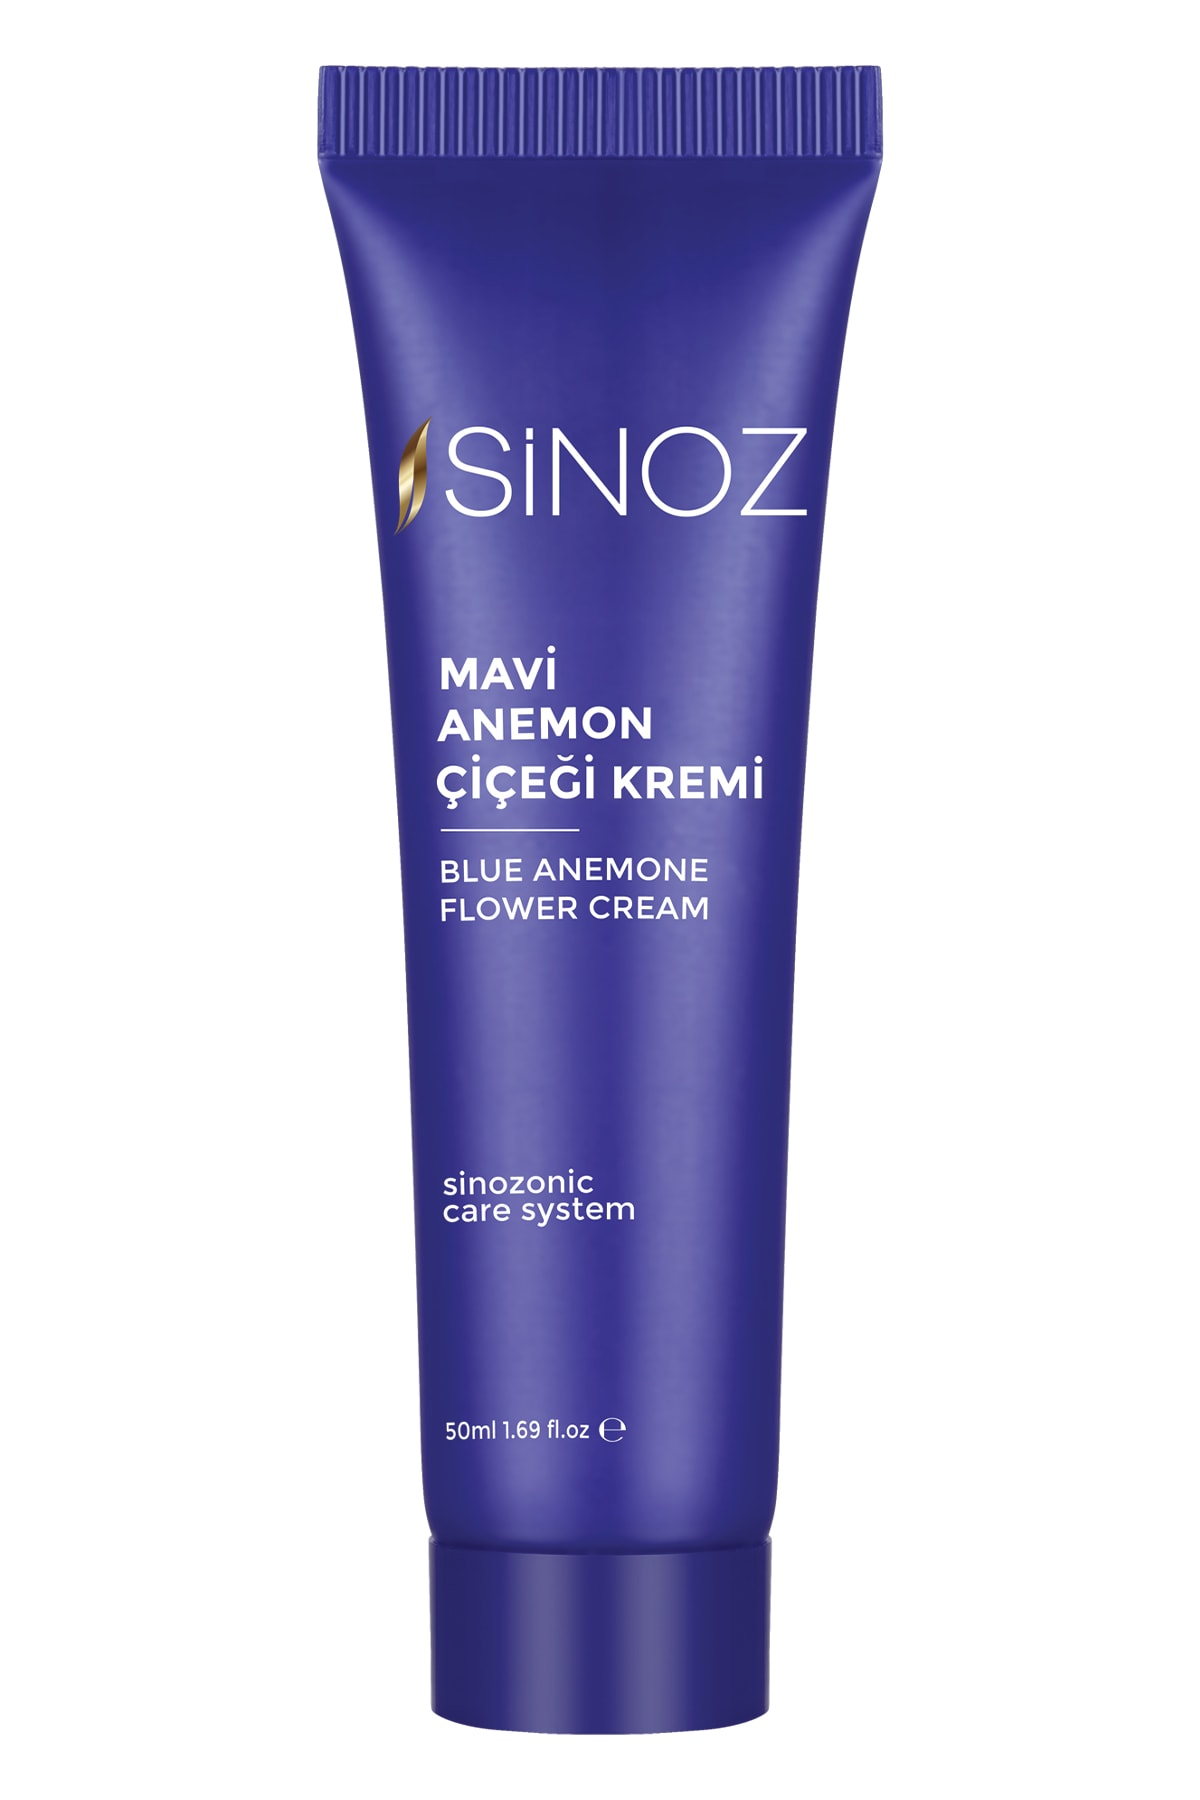 Sinoz Blue Anemone Flower Cream | Supports skin renewal with apricot kernel oil extracts, prevents aging, 50 ml